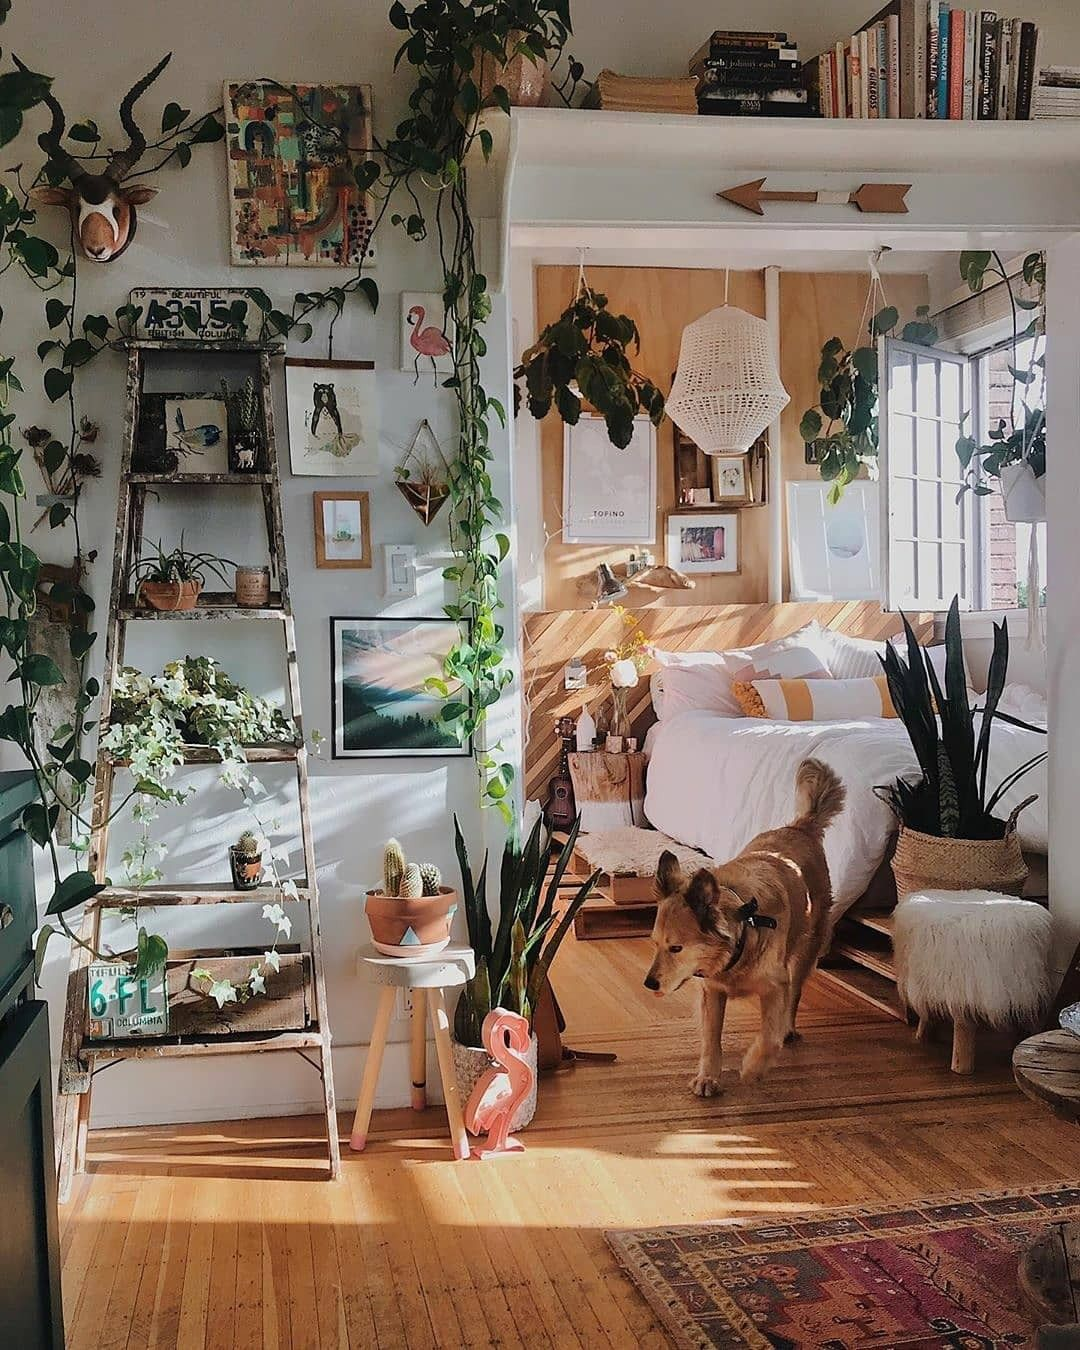 Home Decorating Ideas With Bohemian Style Home Decor Room